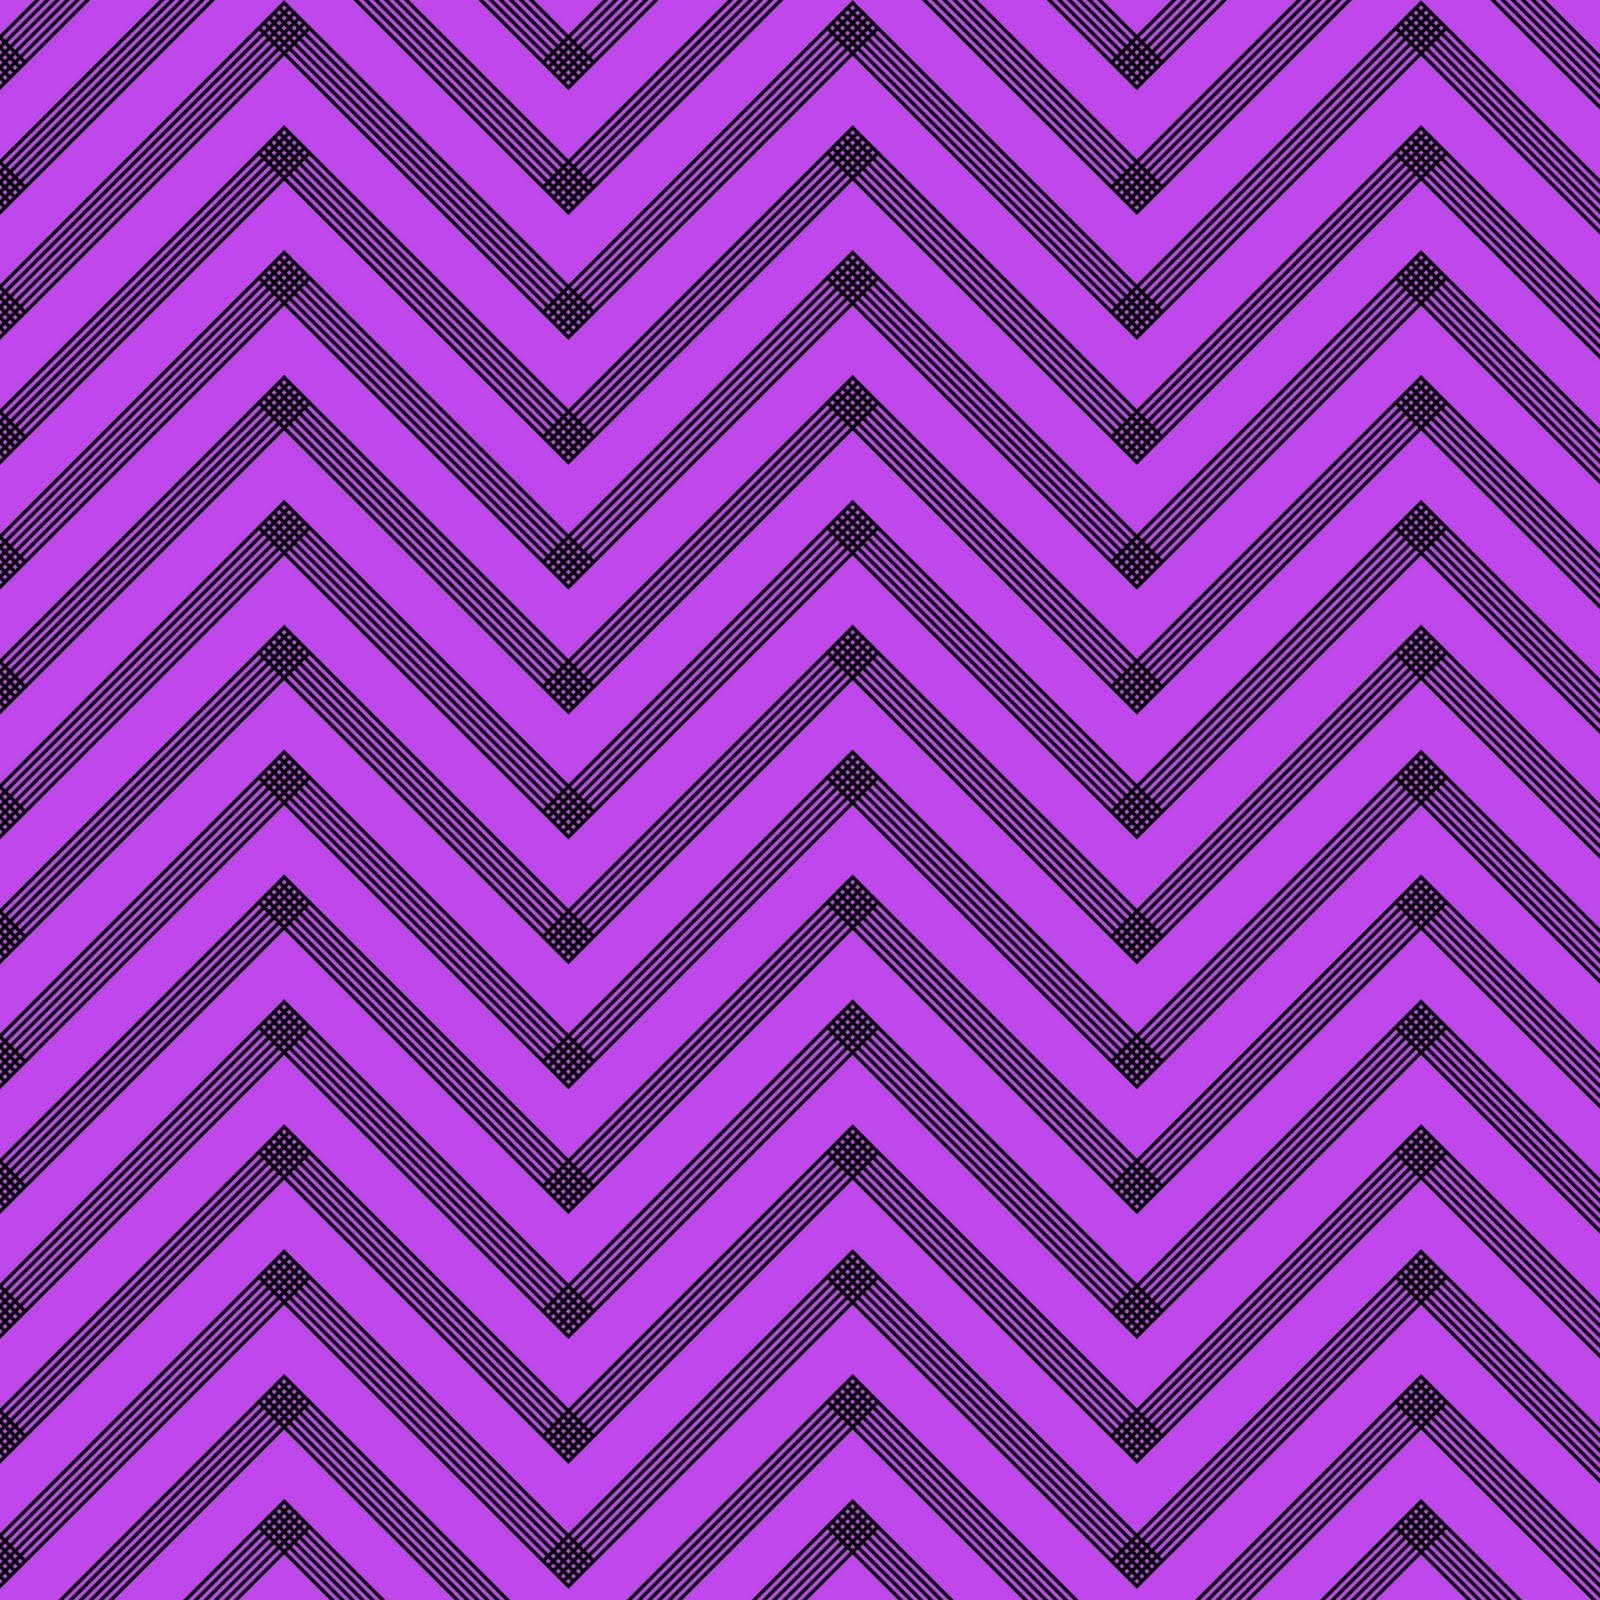 Zig Zag Wallpapers - WallpaperSafari